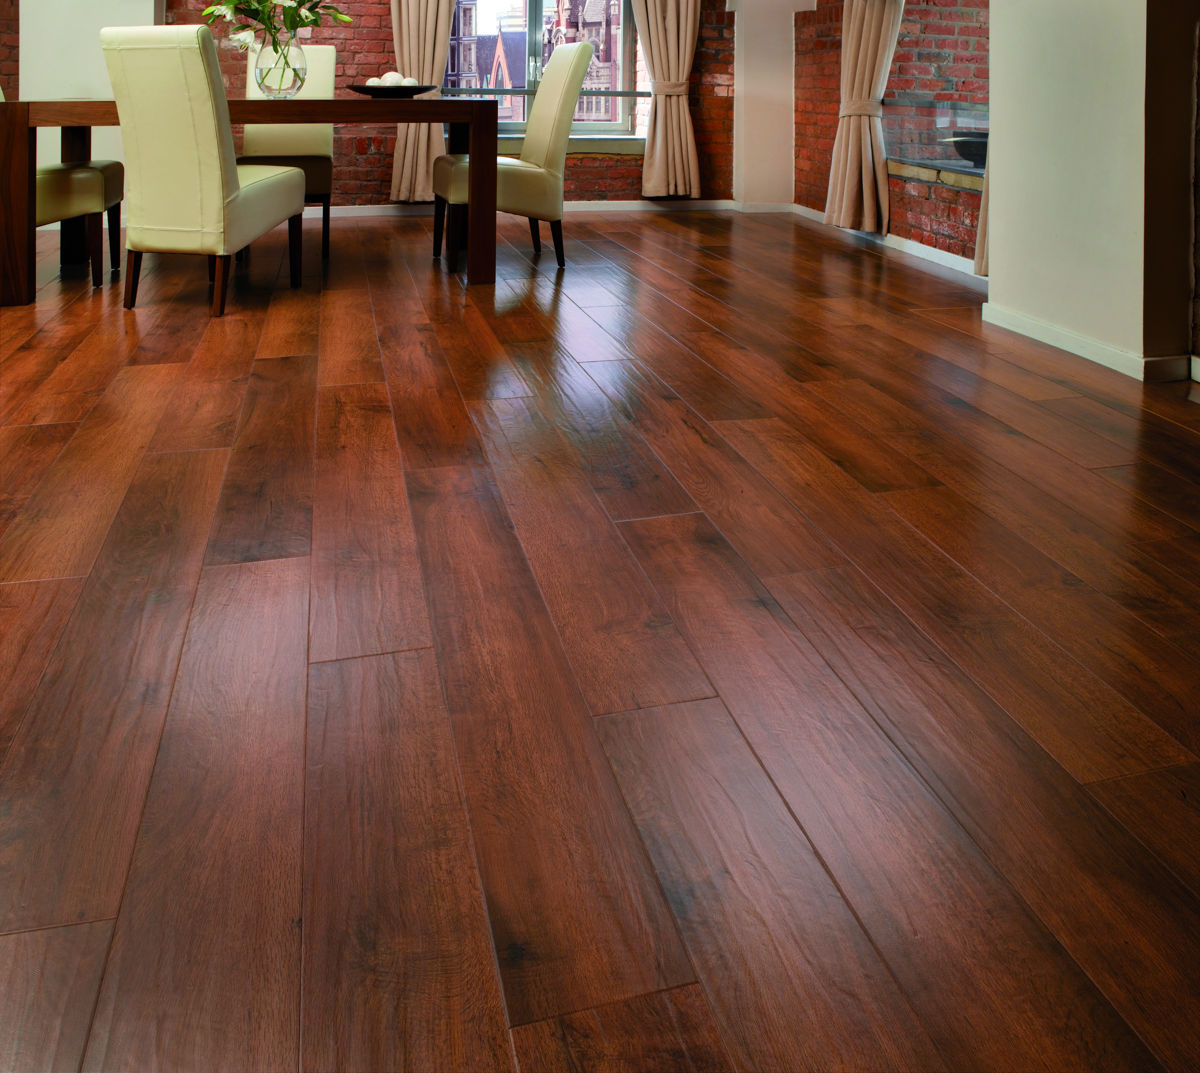 Karndean Art Select Autumn Oak Rl03 Vinyl Flooring